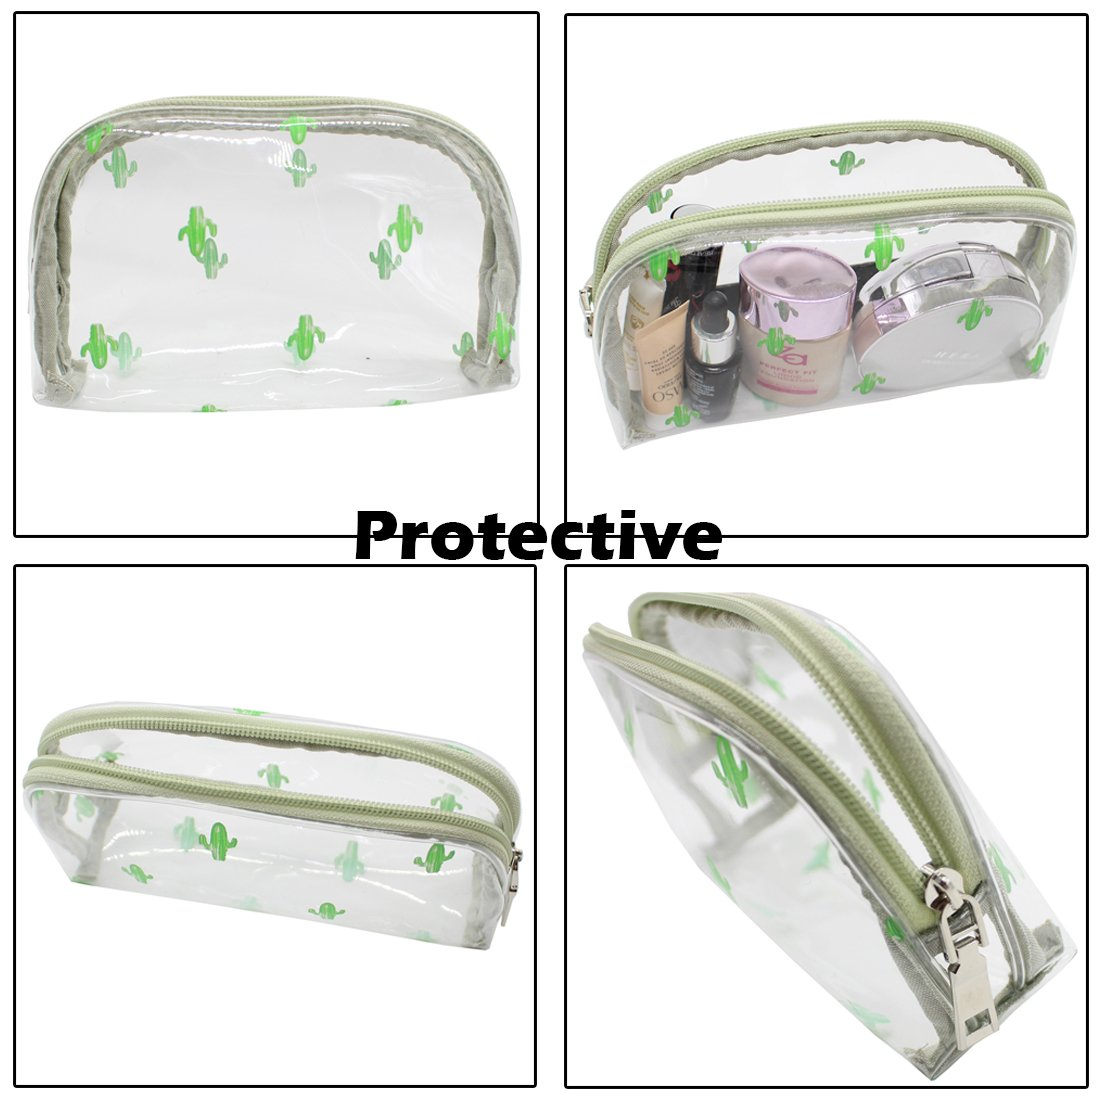 TePiLl Hanging Toiletries Bag Kit Clear PVC Travel Bathroom Makeup Brush Comestic Pouch Case for Men and Women